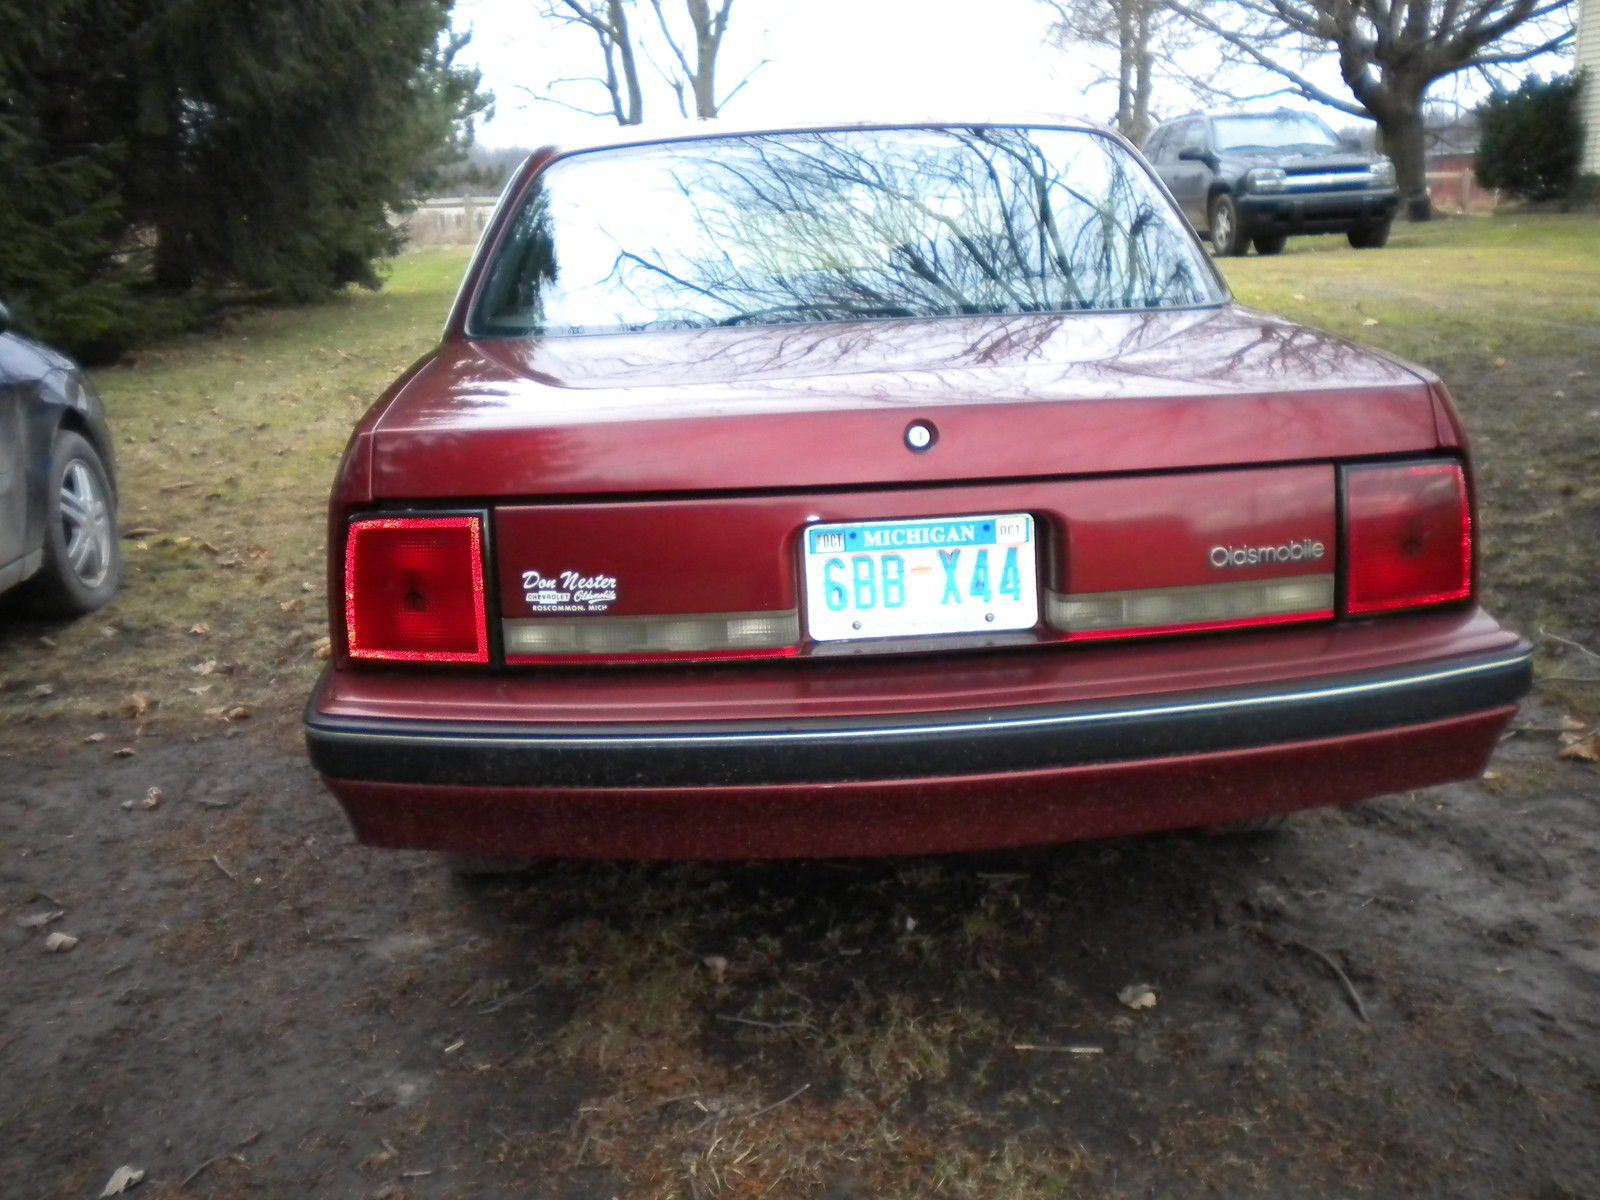 1990 Cutlass Ciera V6 Fi Non Smoker Clean Body Runs Great